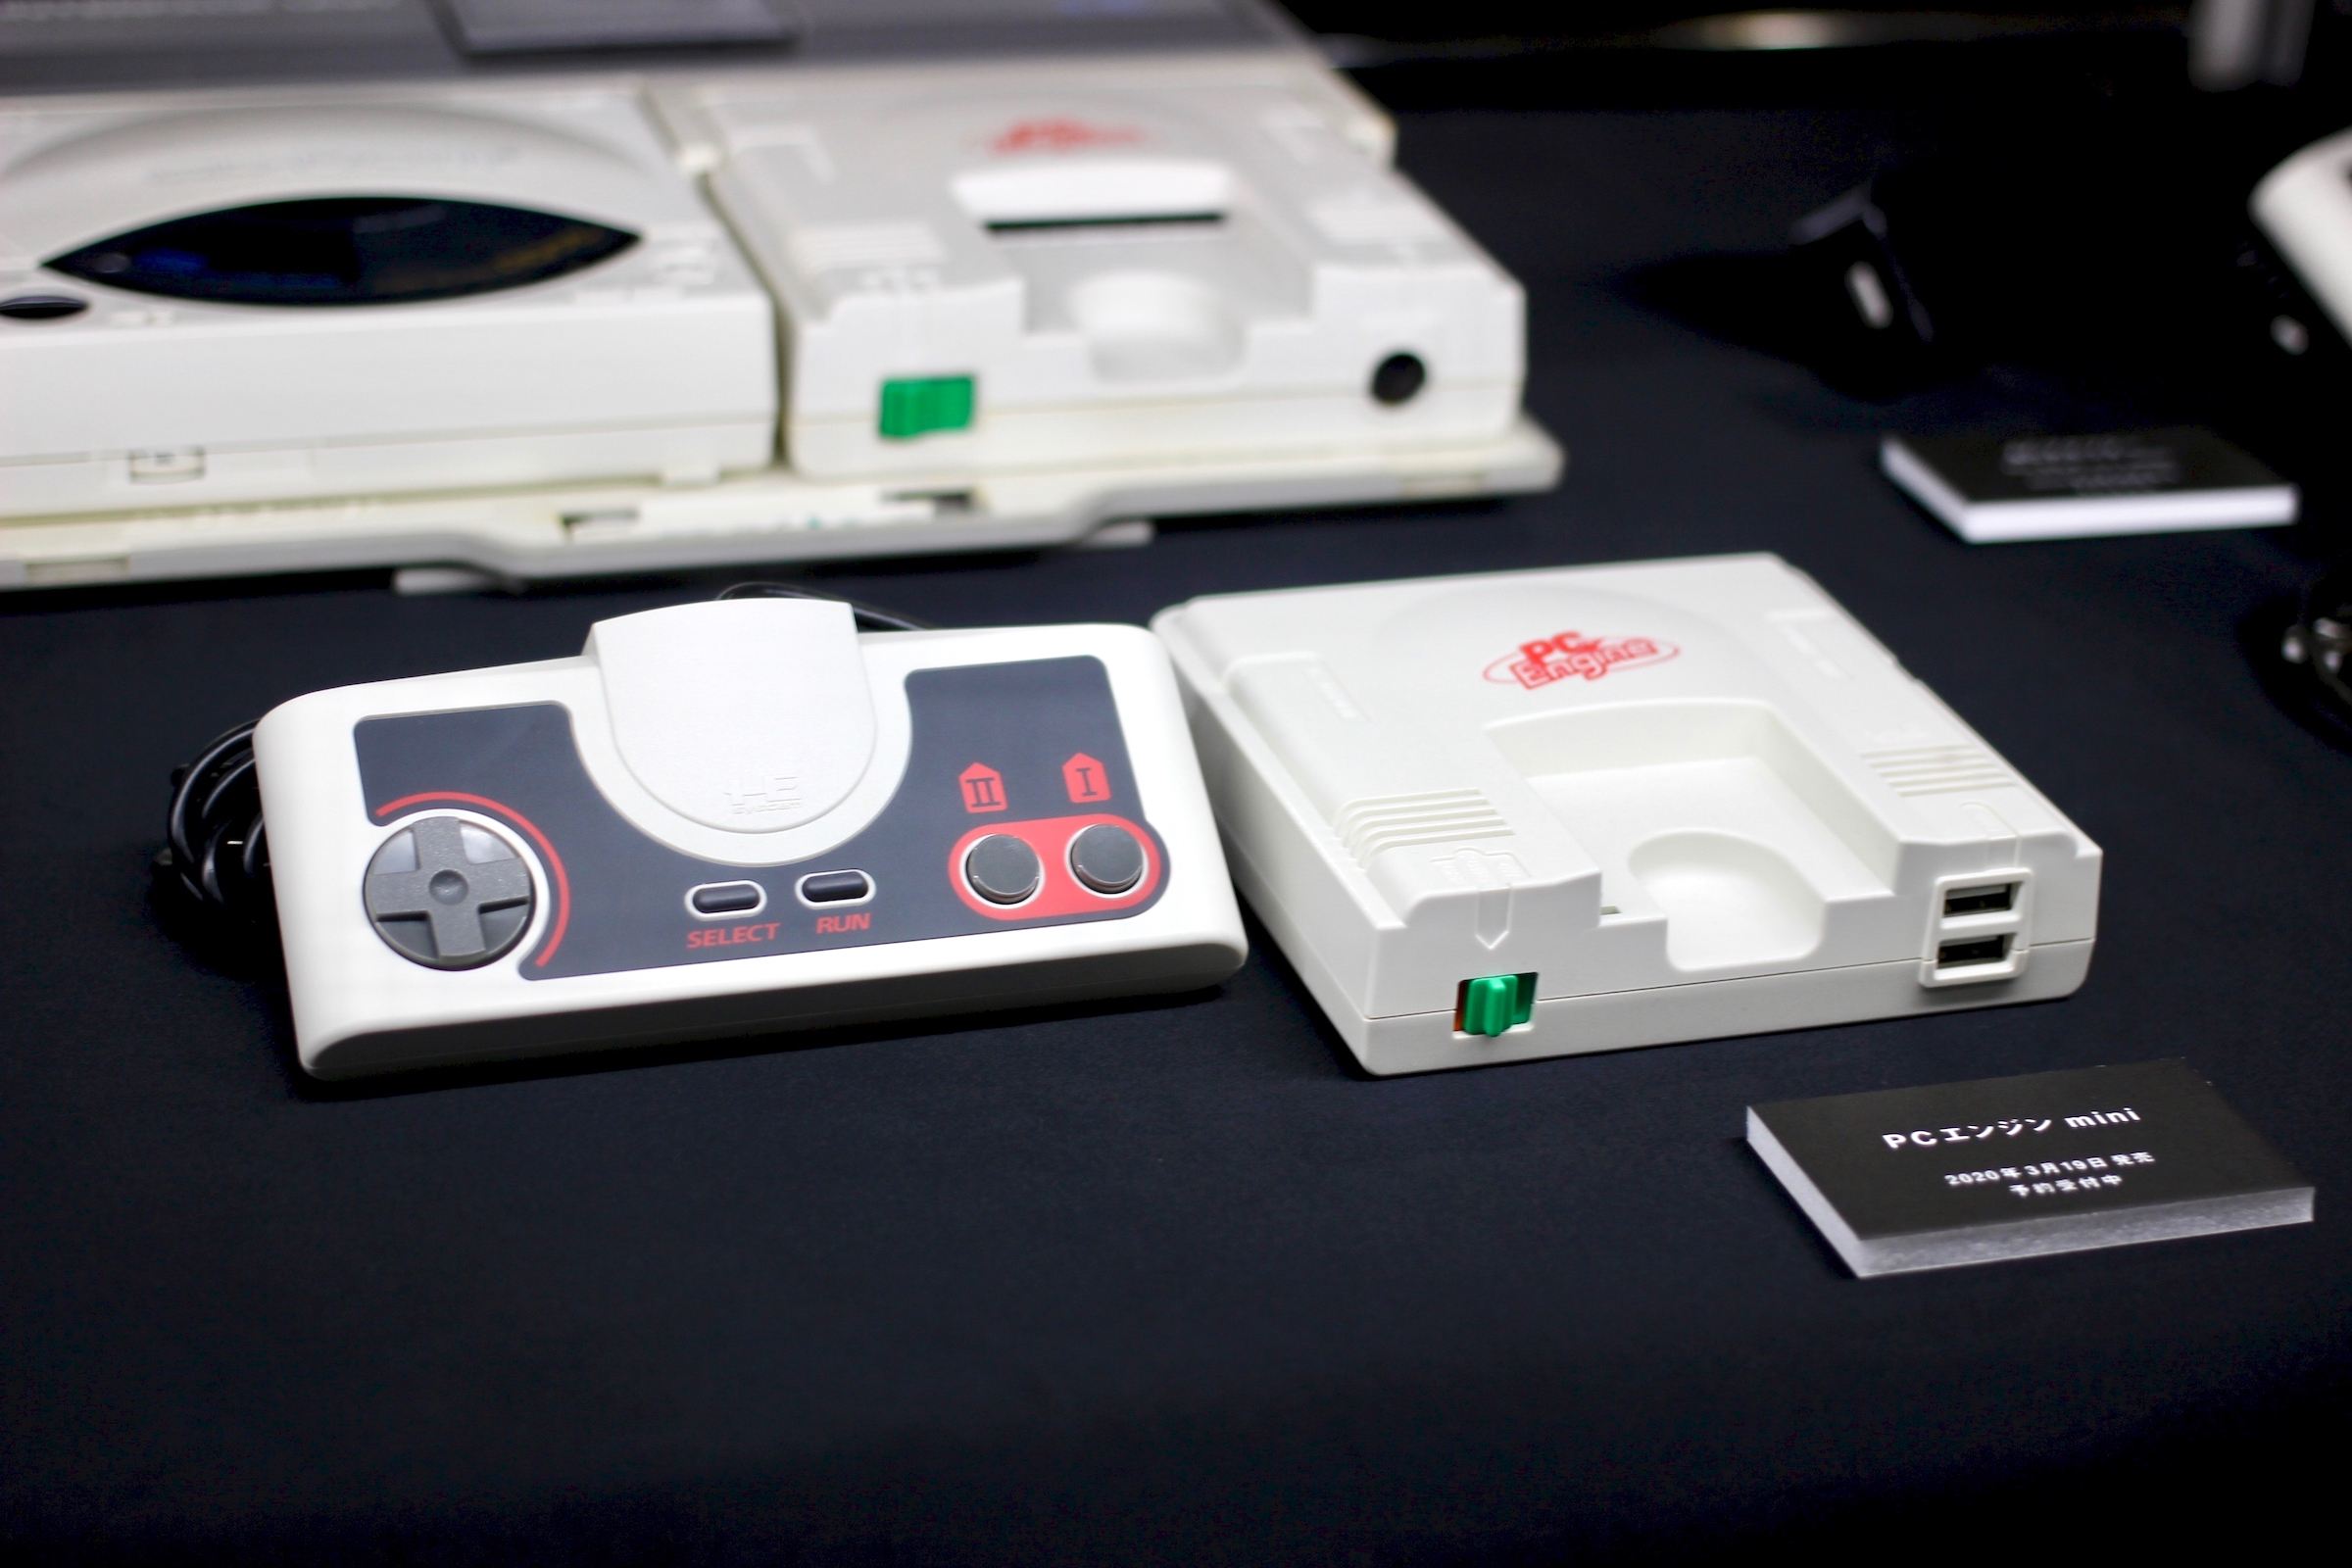 Konami's mini TurboGrafx-16 and PC Engine combine cool hardware with great games